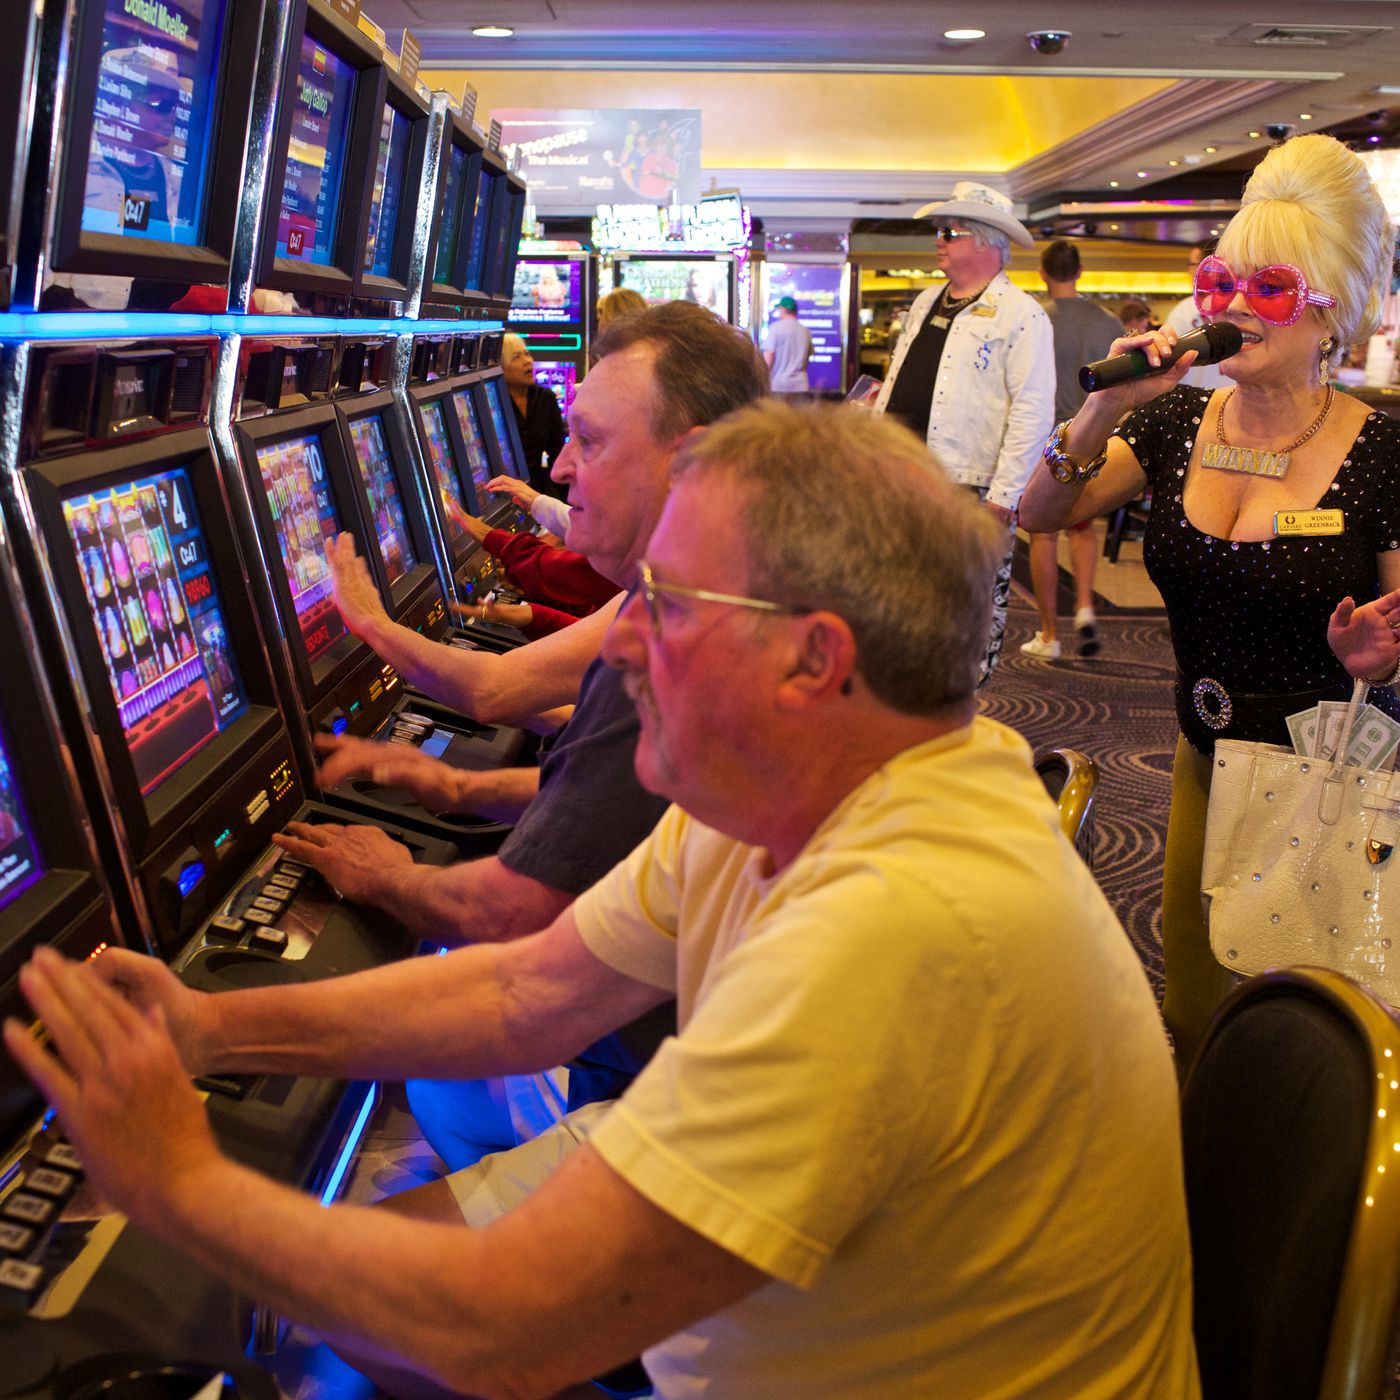 Slot machines perfected addictive gaming. Now, tech wants their tricks |  The Verge